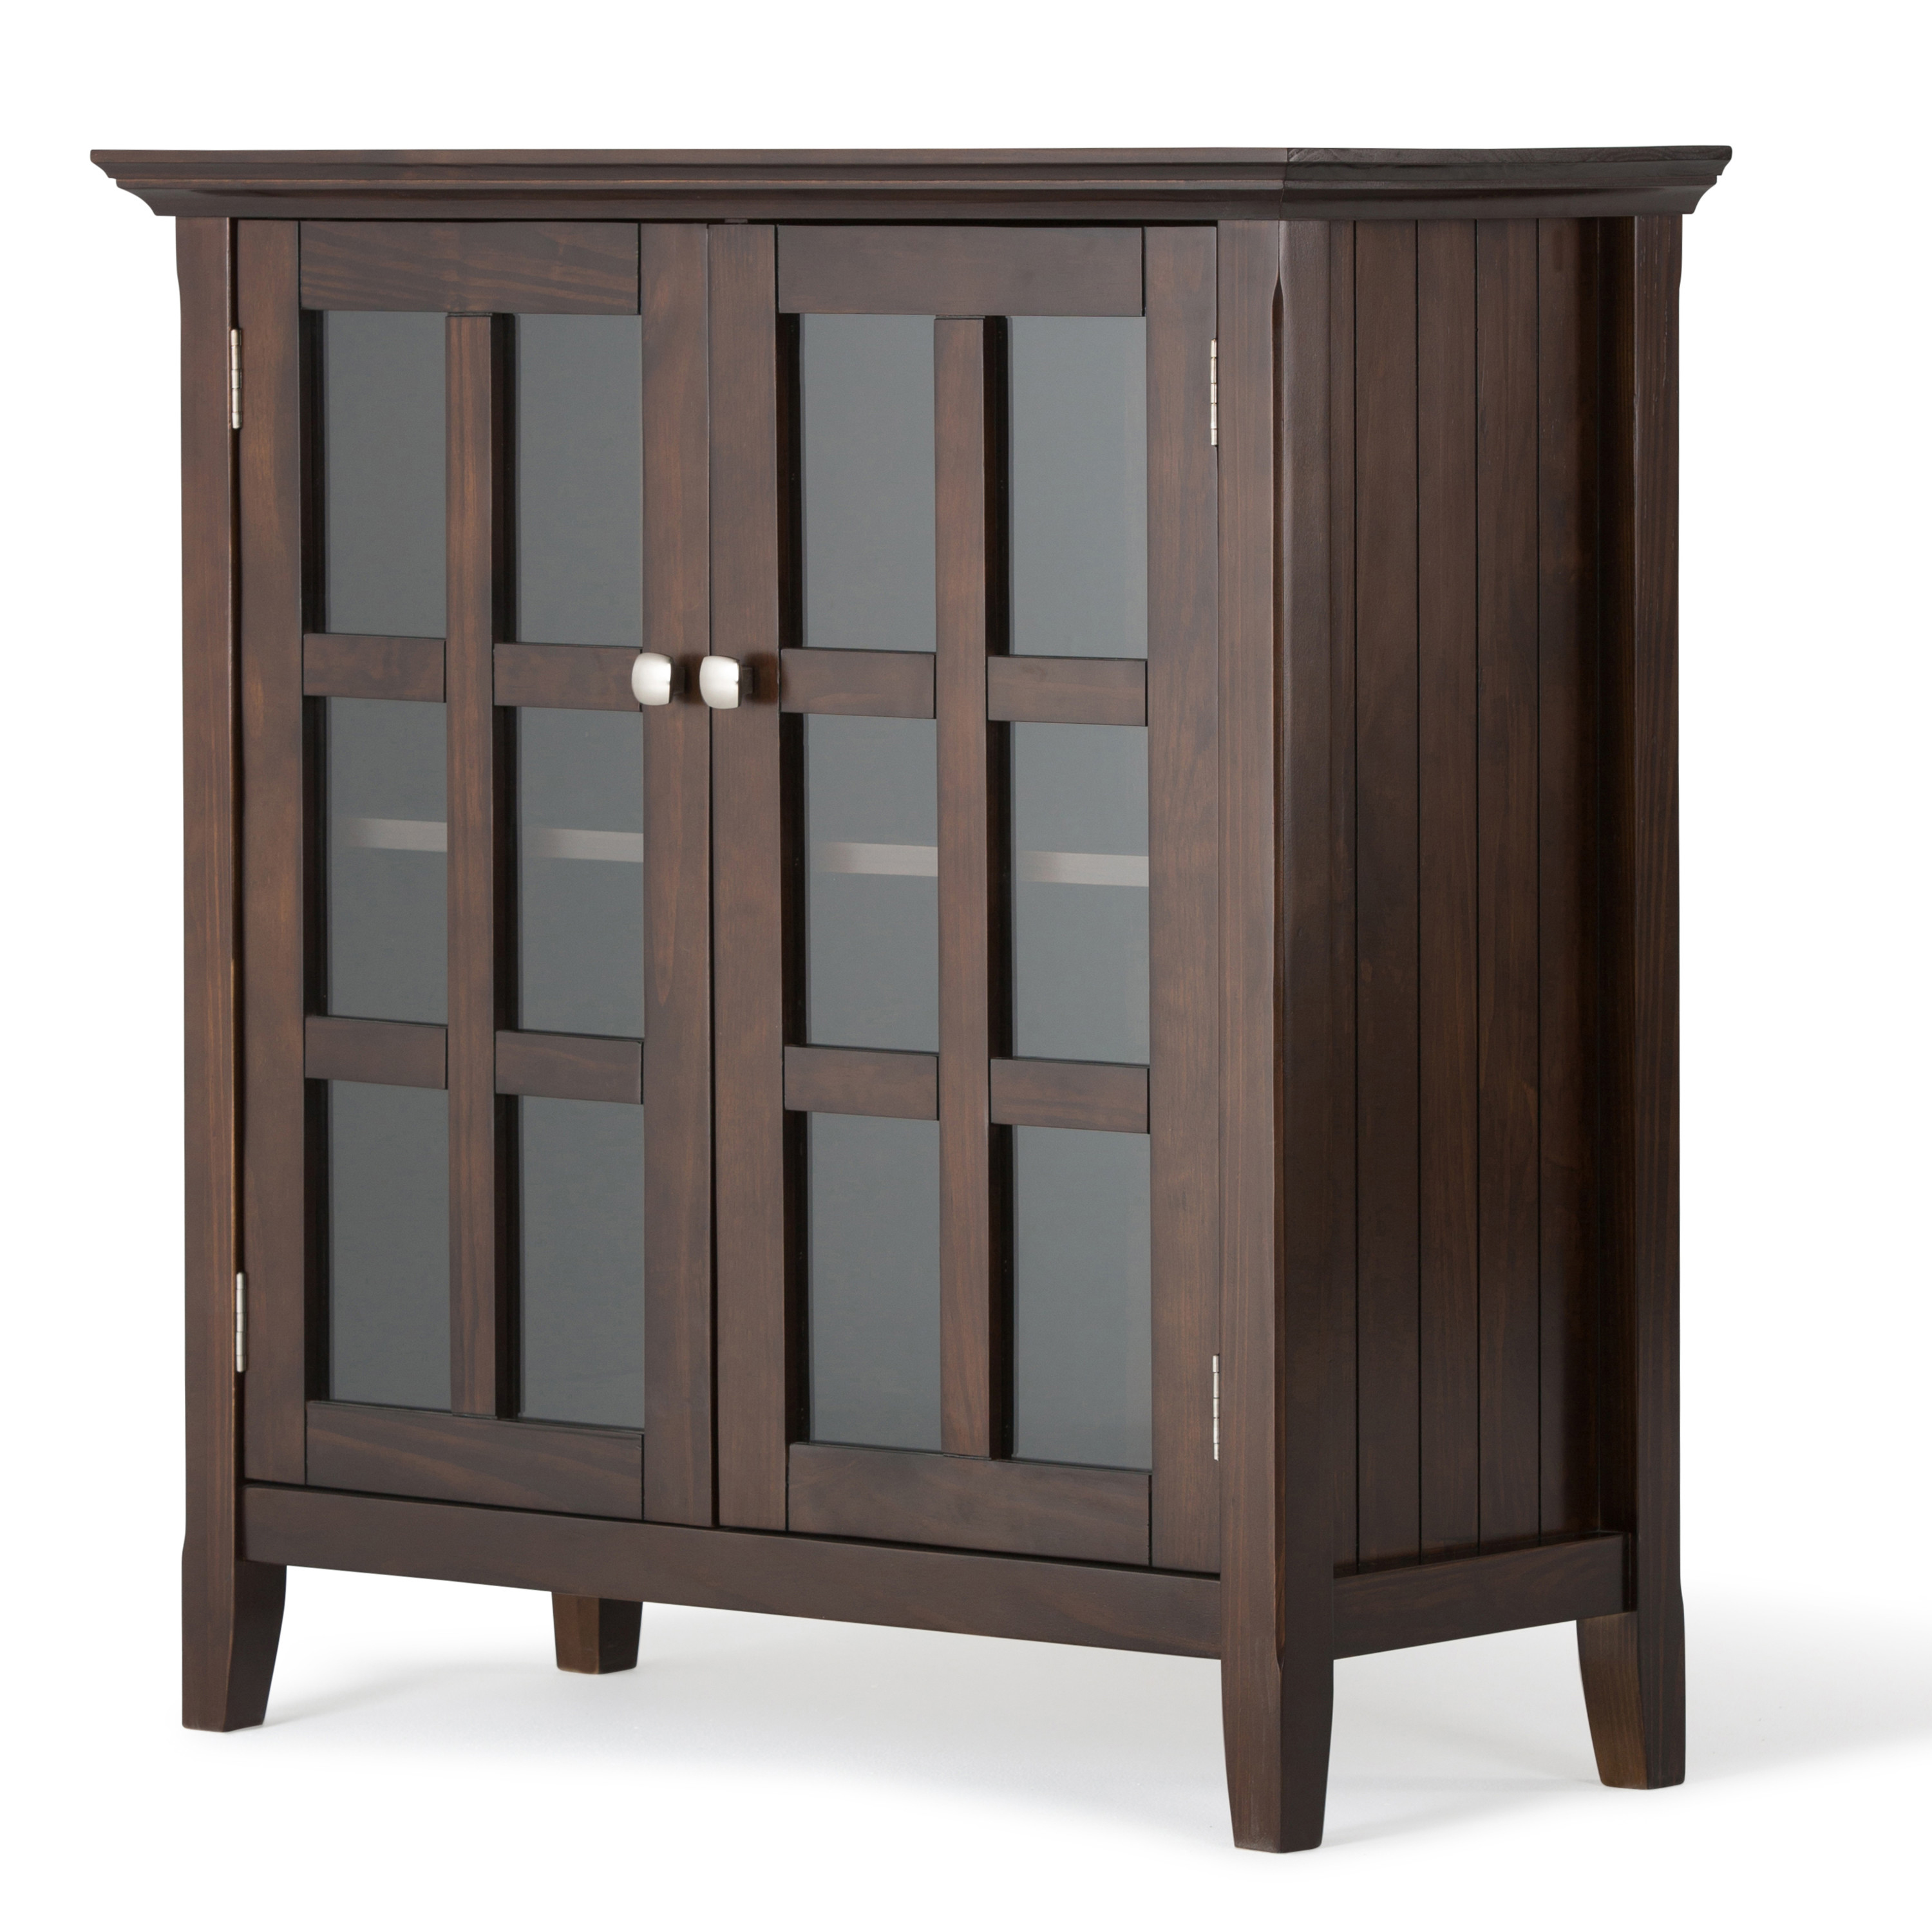 Brooklyn Max Brunswick Solid Wood 35 Inch Wide Rustic Low Storage Cabinet In Tobacco Brown Walmart Com Walmart Com